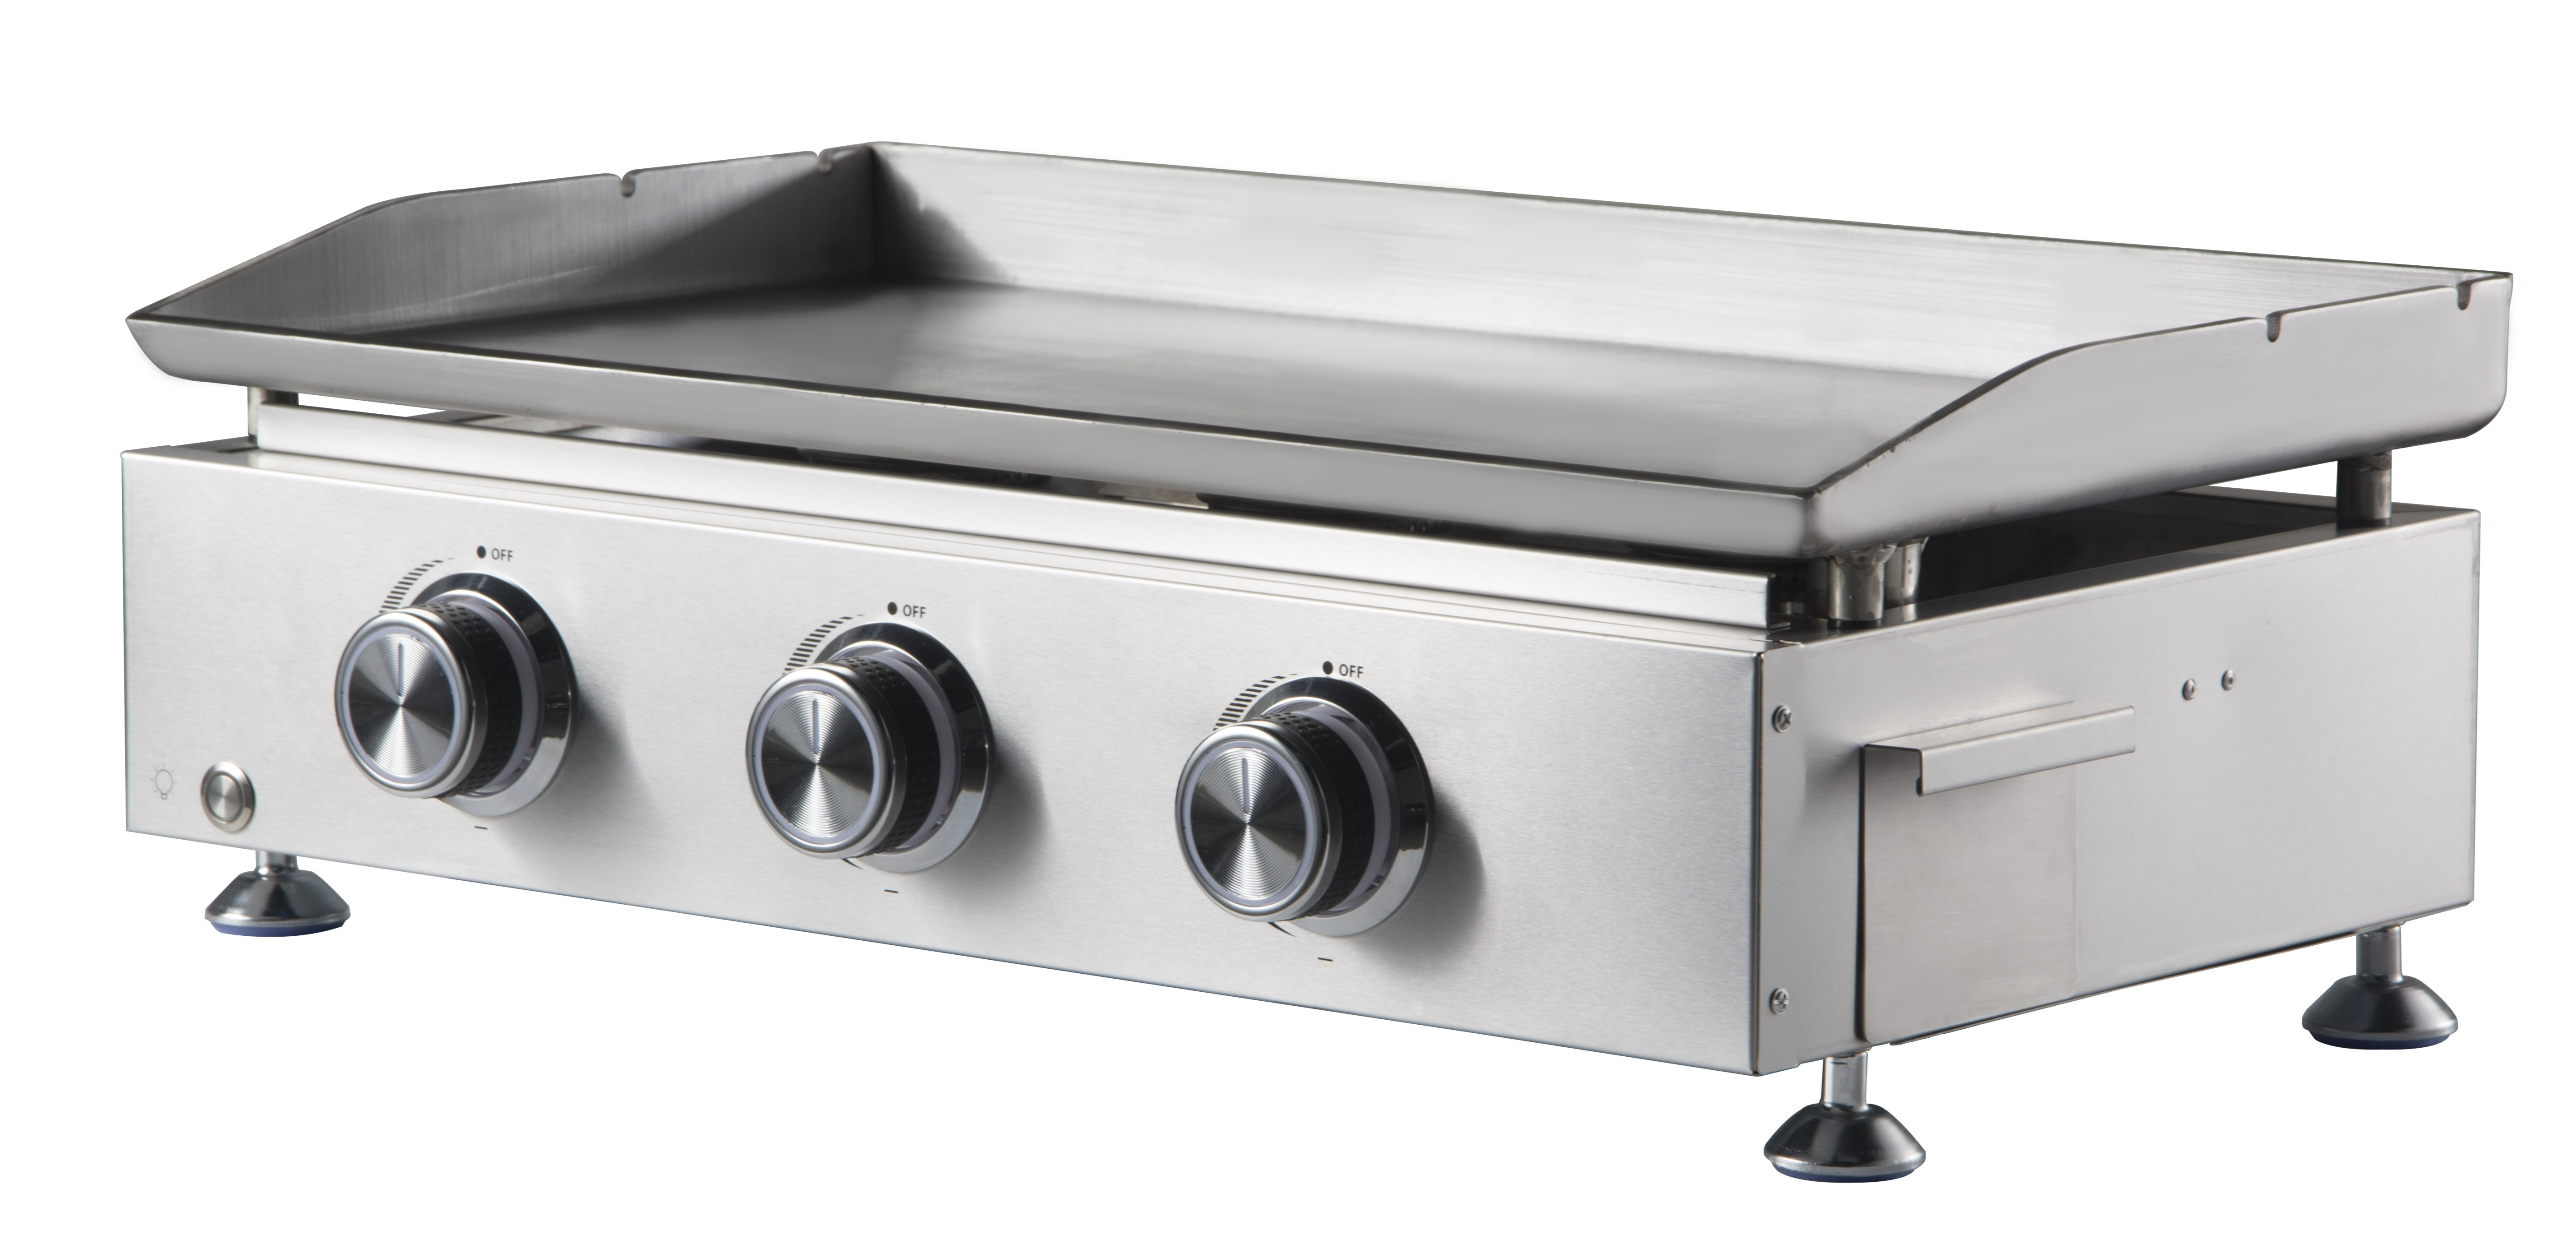 3 Burner Stainless Steel Tabletop Grill